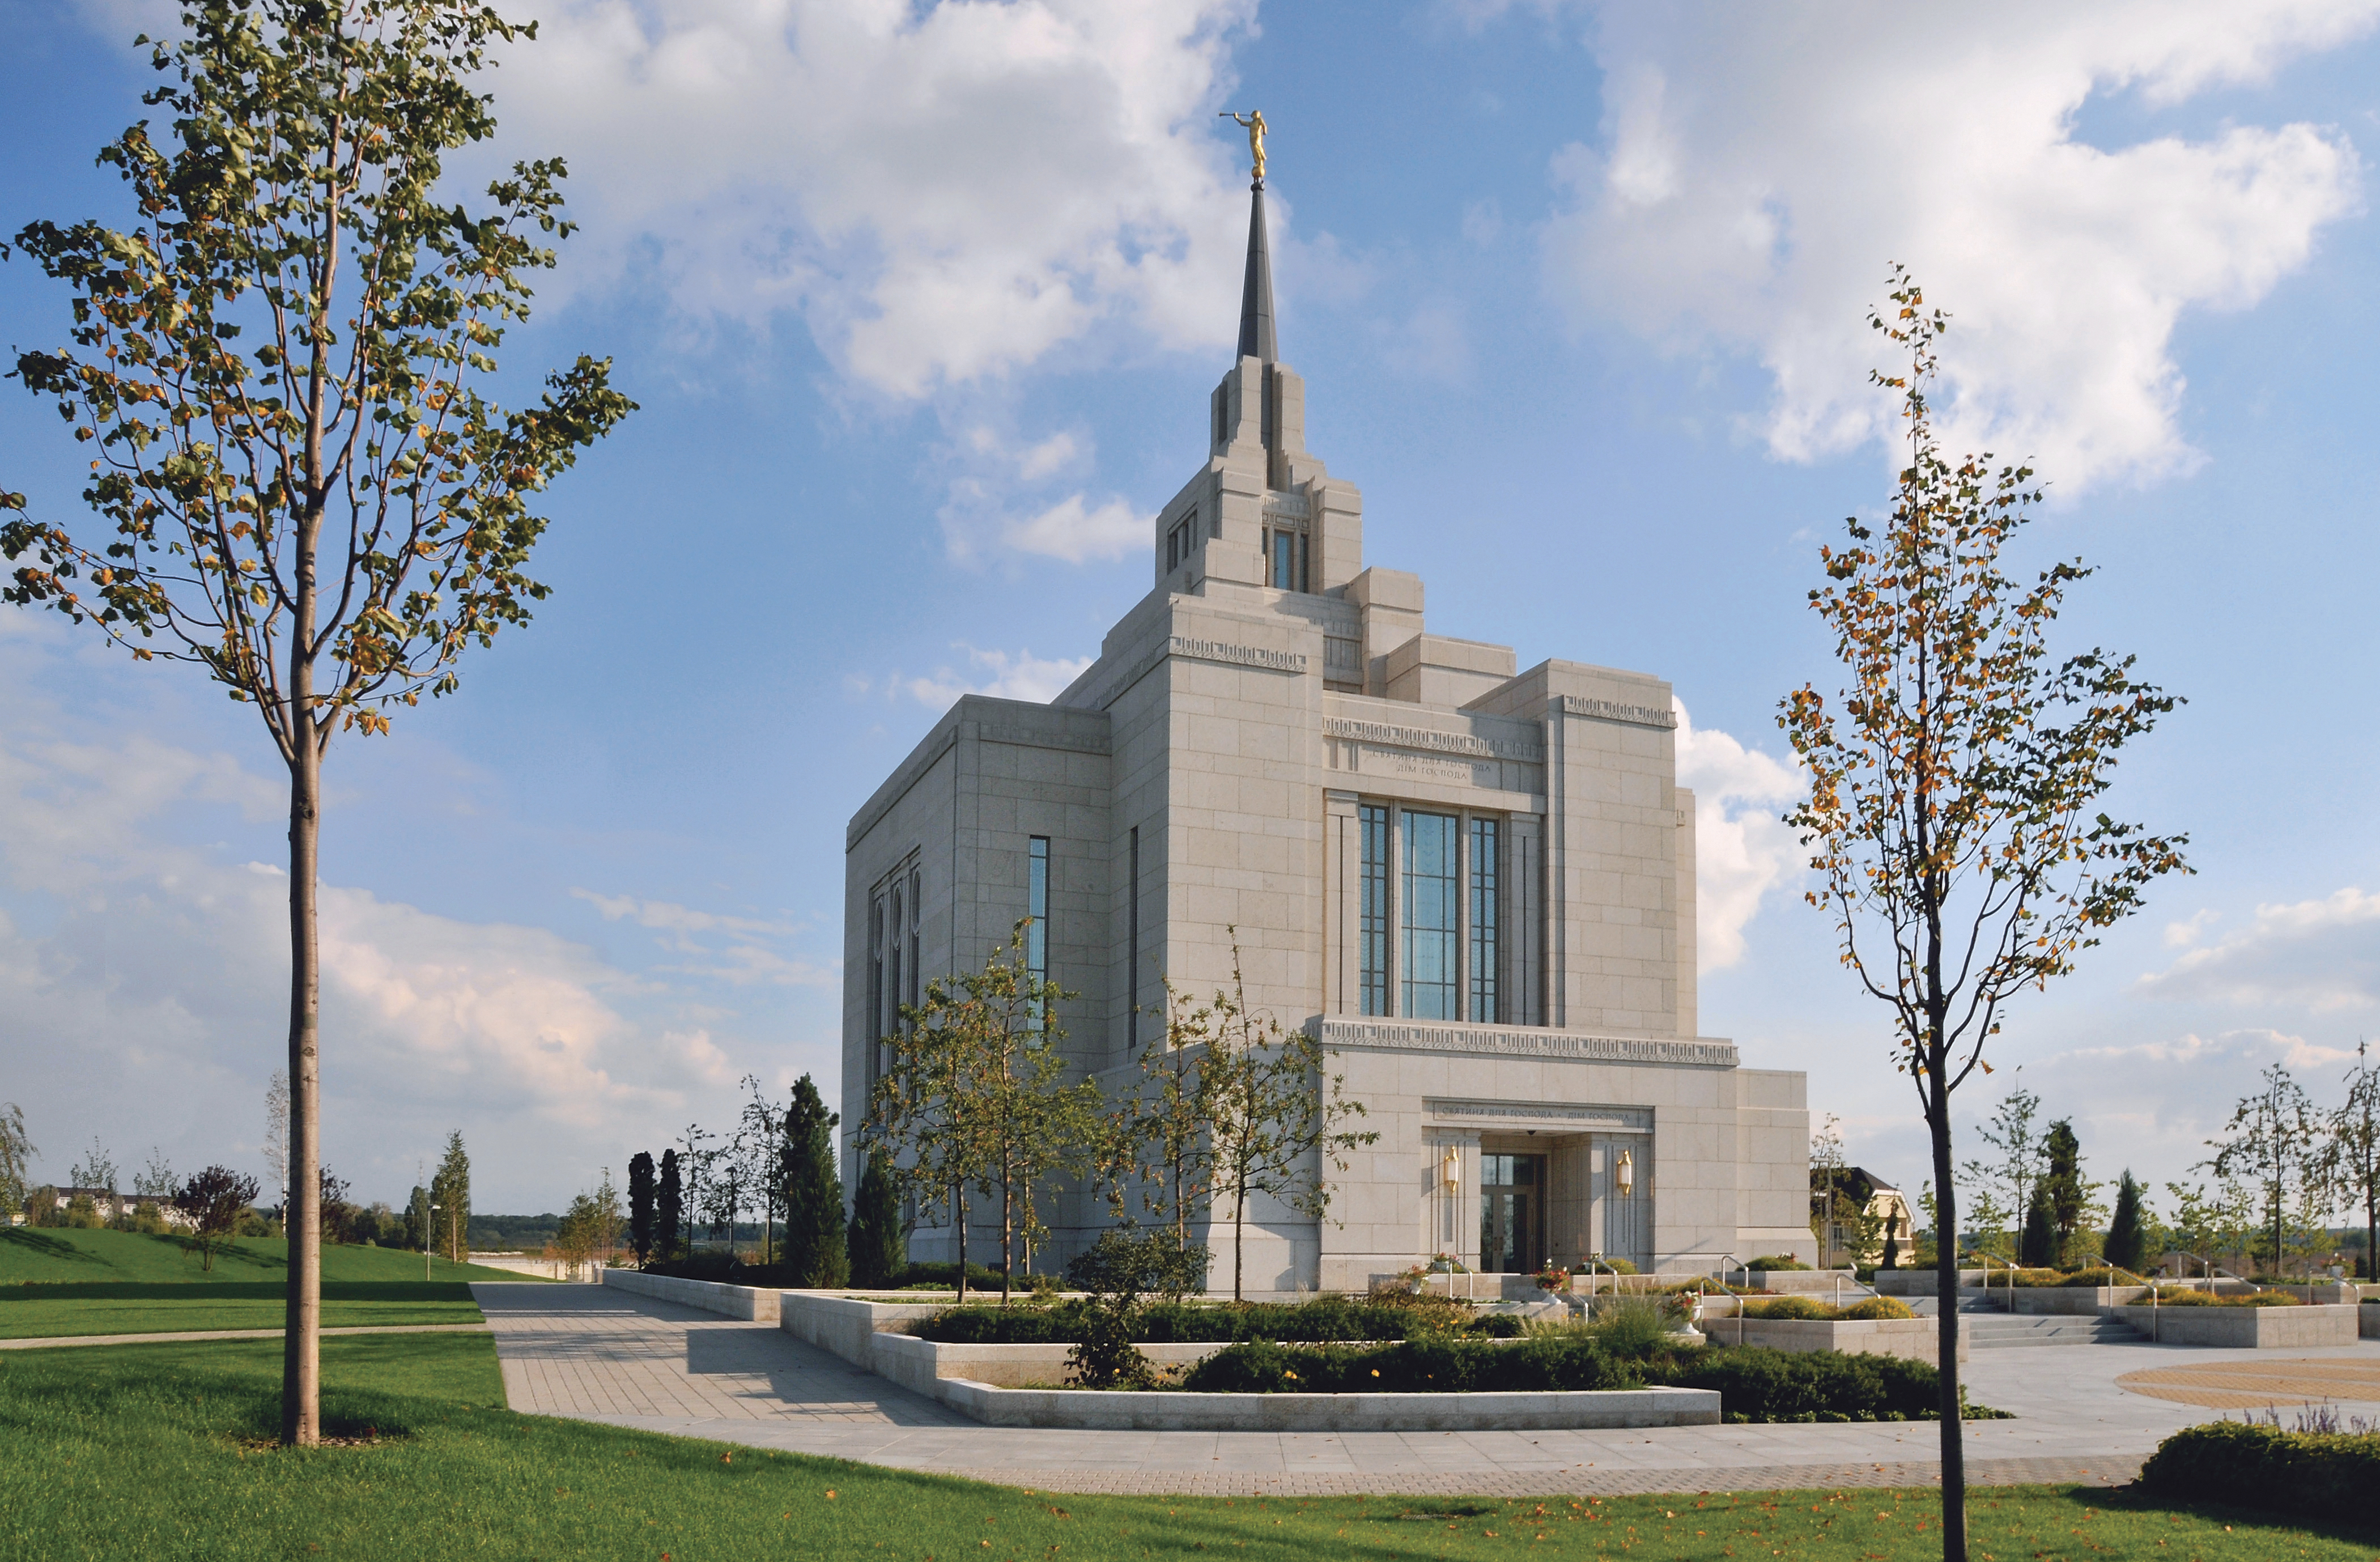 The entire Kyiv Ukraine Temple, including the entrance and landscaping.